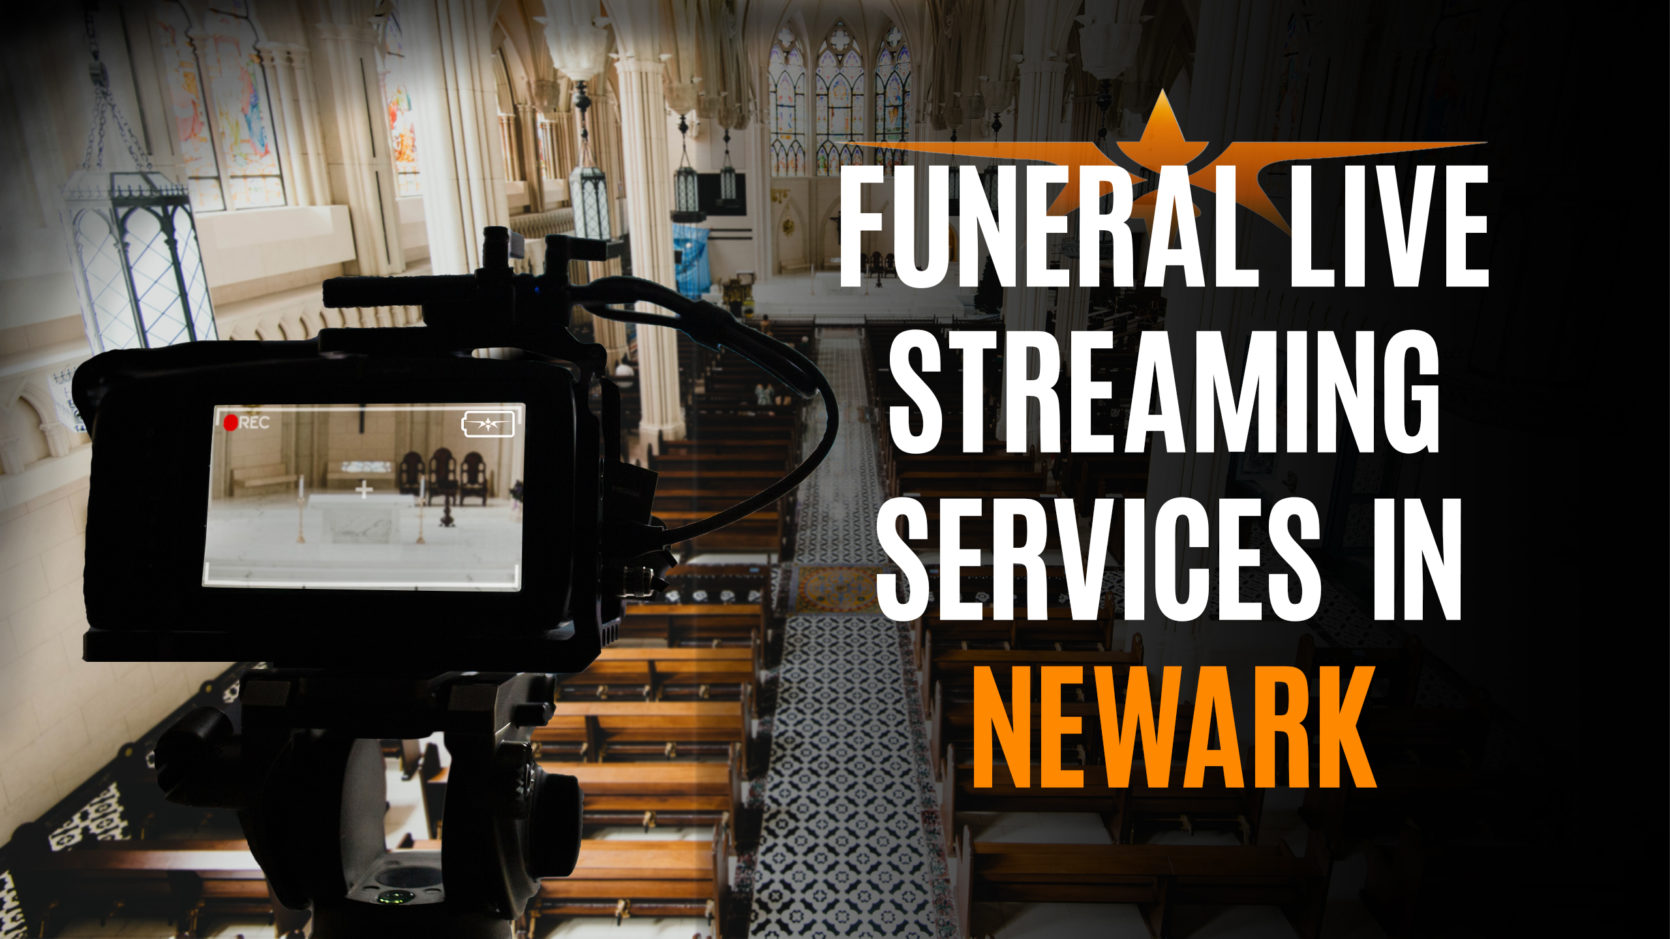 Funeral Live Streaming Services in Newark